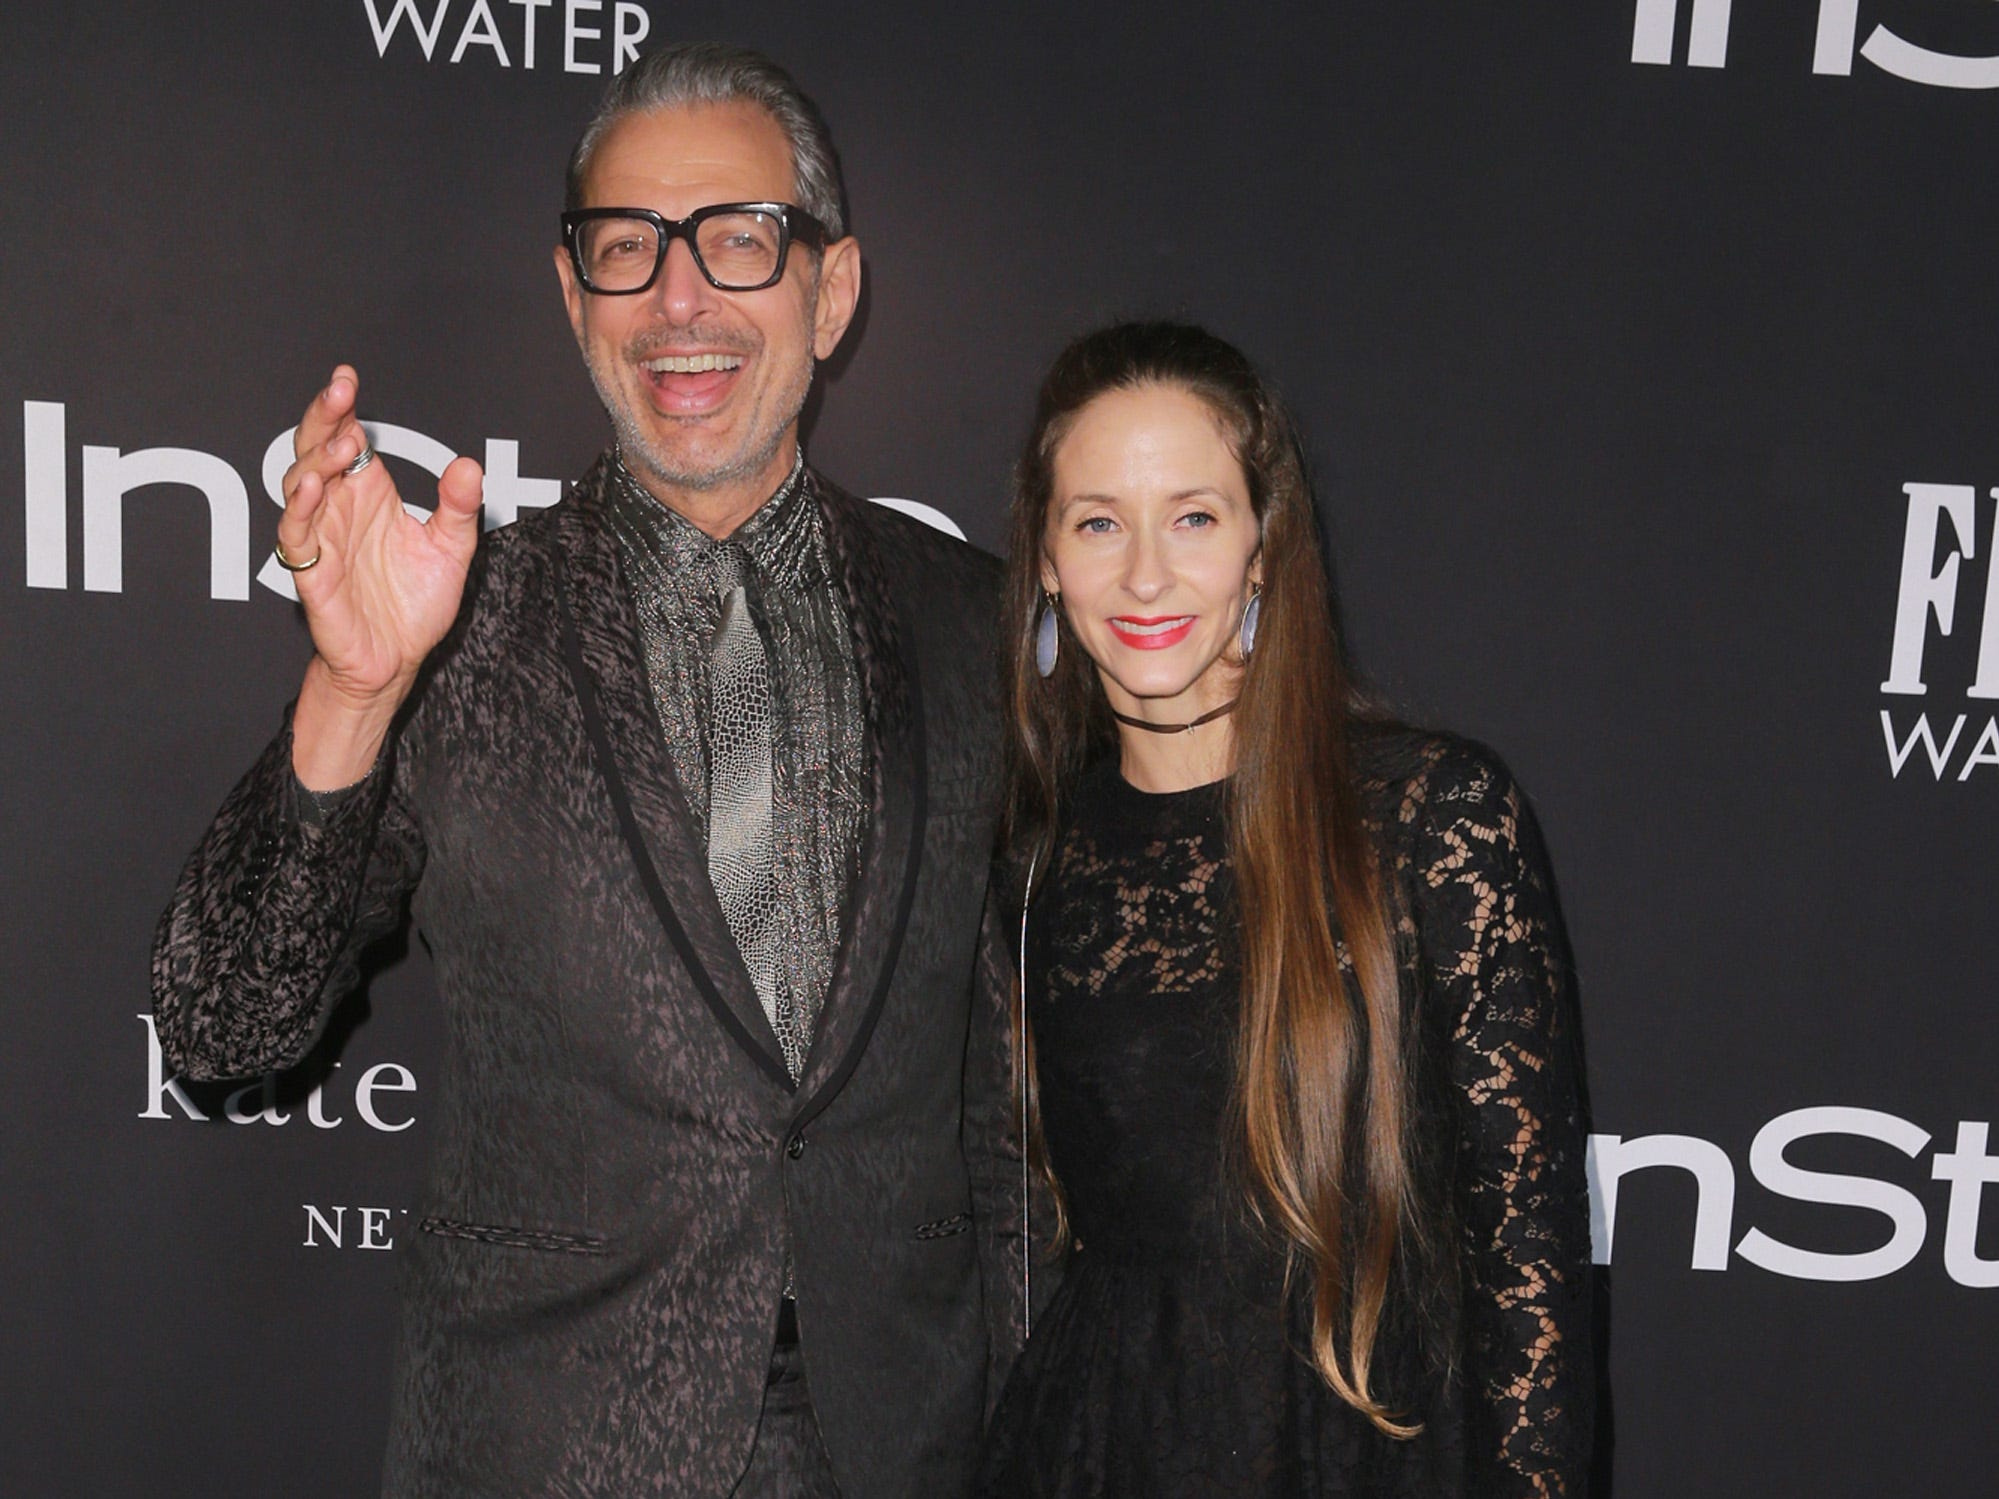 LOS ANGELES, CA - OCTOBER 22: Jeff Goldblum (L) and Emilie Livingston attend the 2018 InStyle Awards at The Getty Center on October 22, 2018 in Los Angeles, California.  (Photo by Rich Fury/Getty Images) ORG XMIT: 775236597 ORIG FILE ID: 1052793788